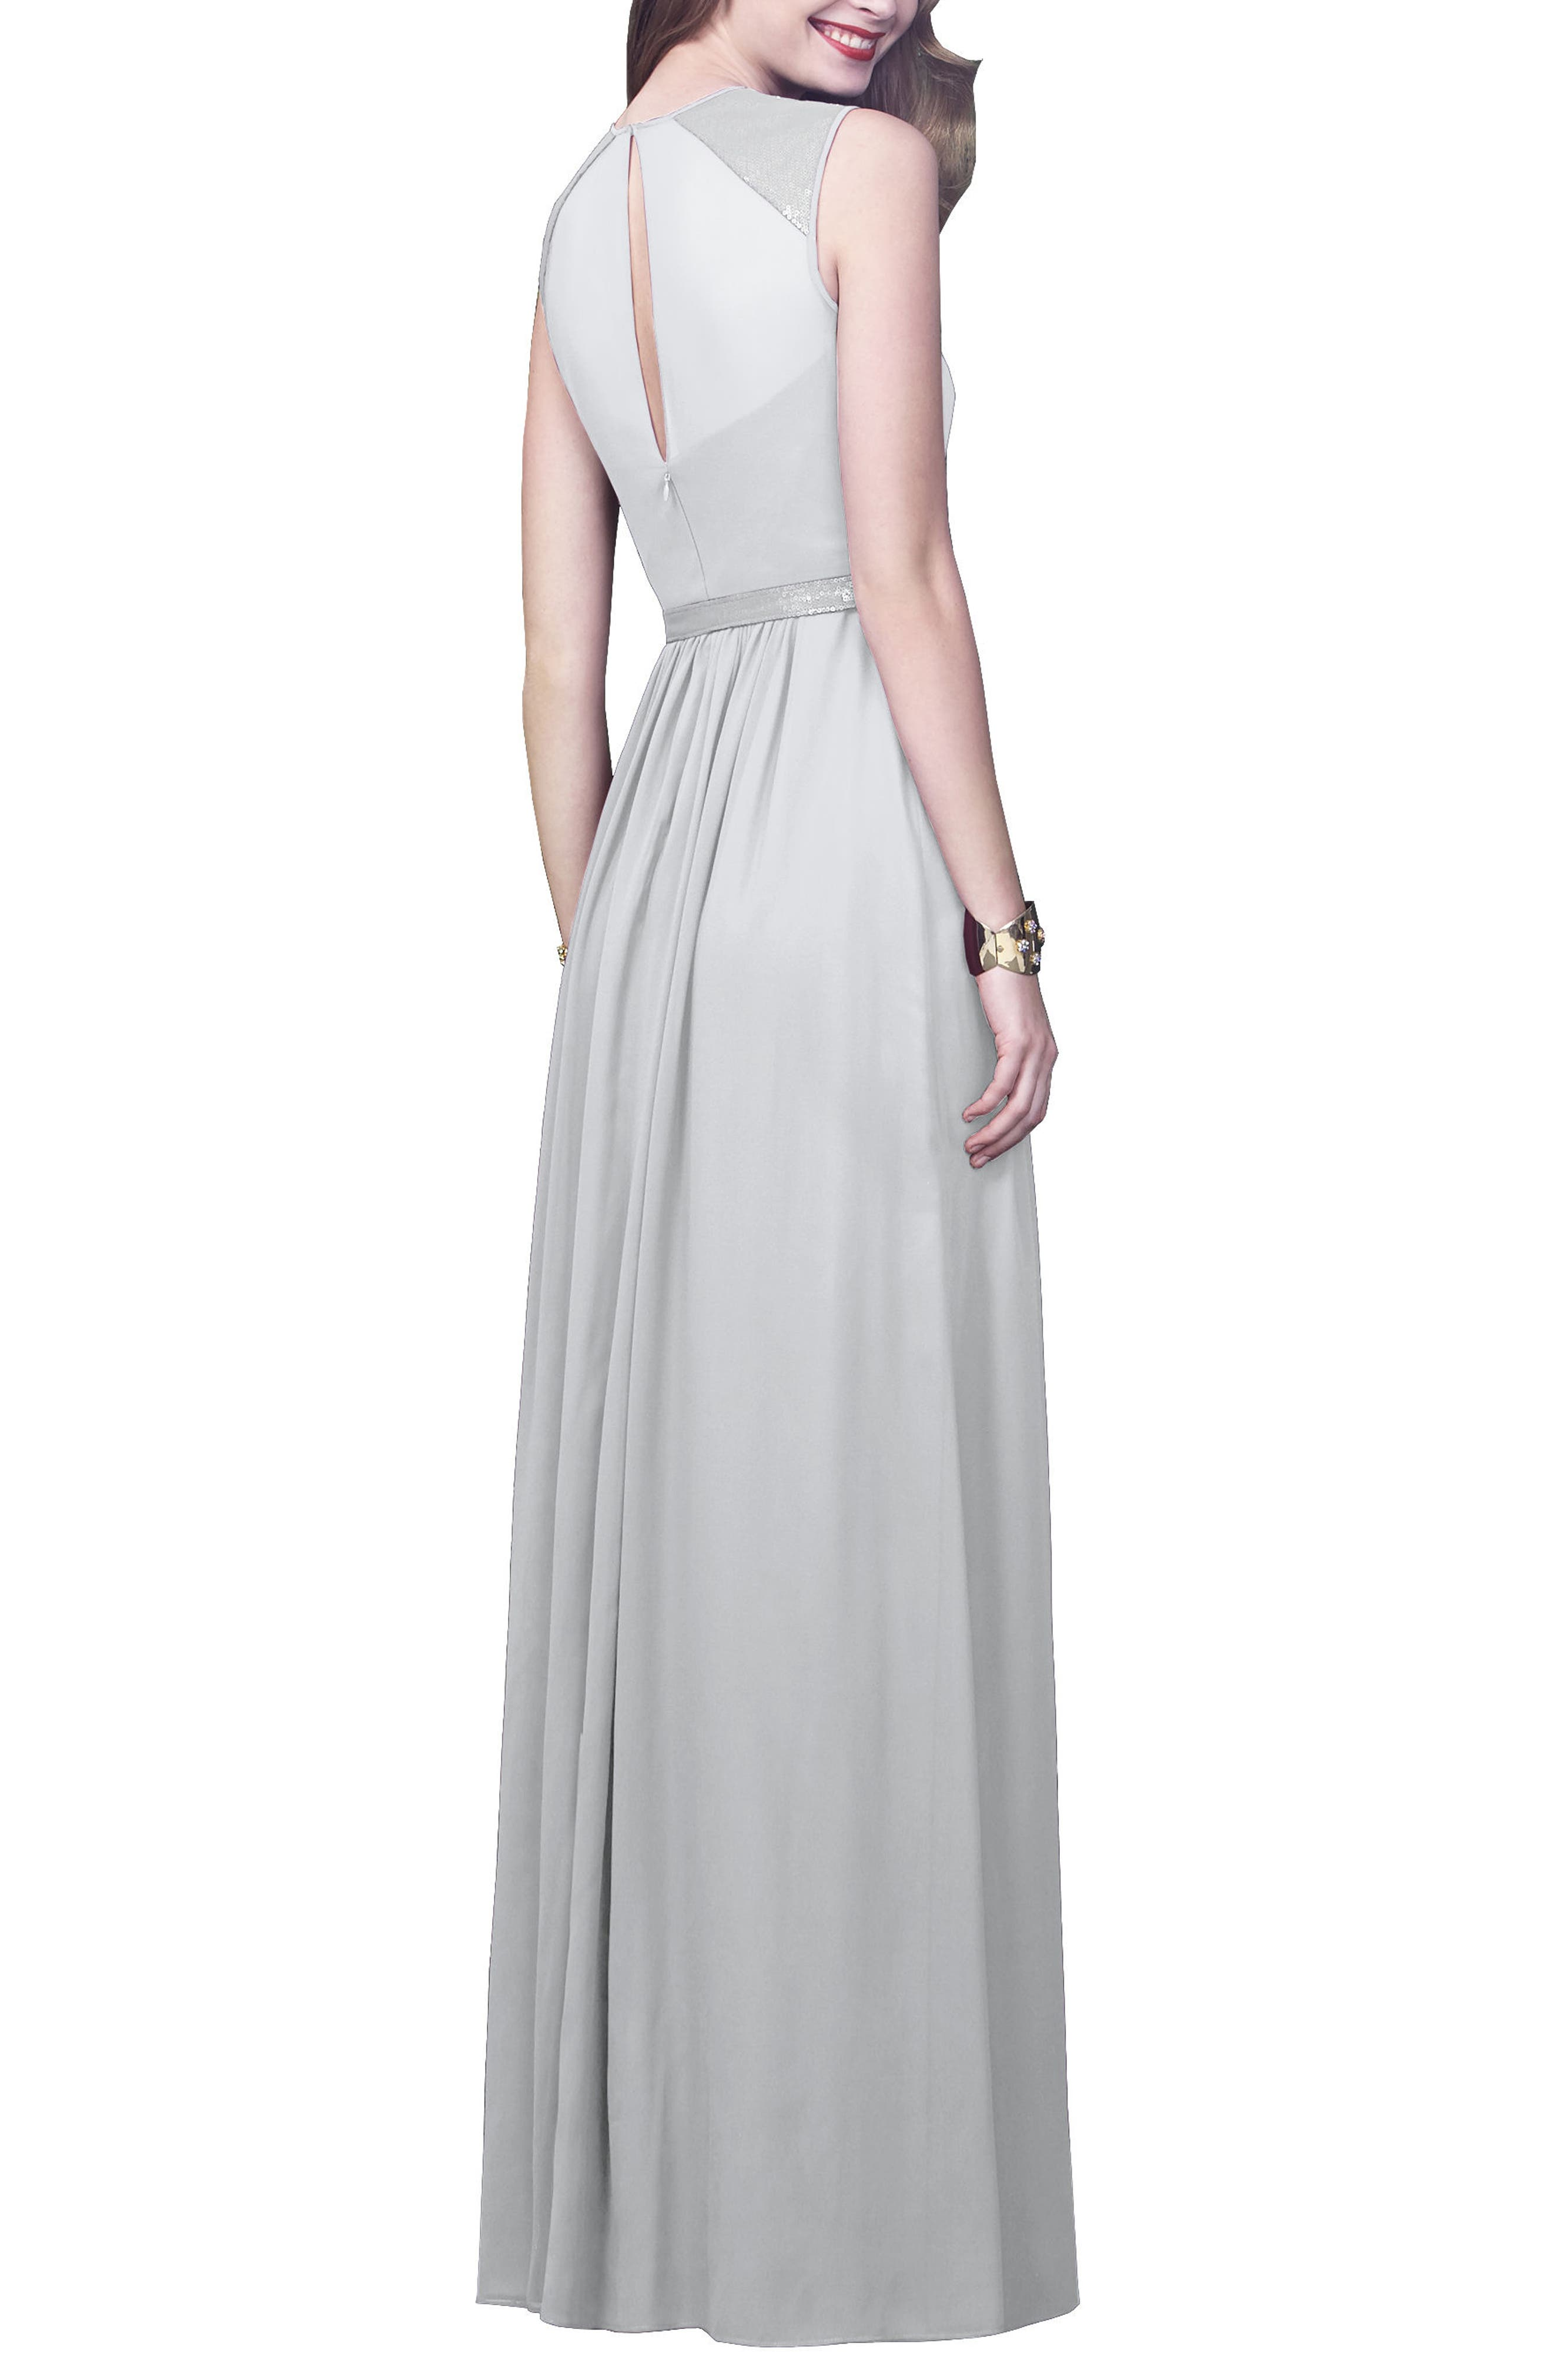 DESSY COLLECTION, Embellished Open Back Gown, Alternate thumbnail 2, color, FROST